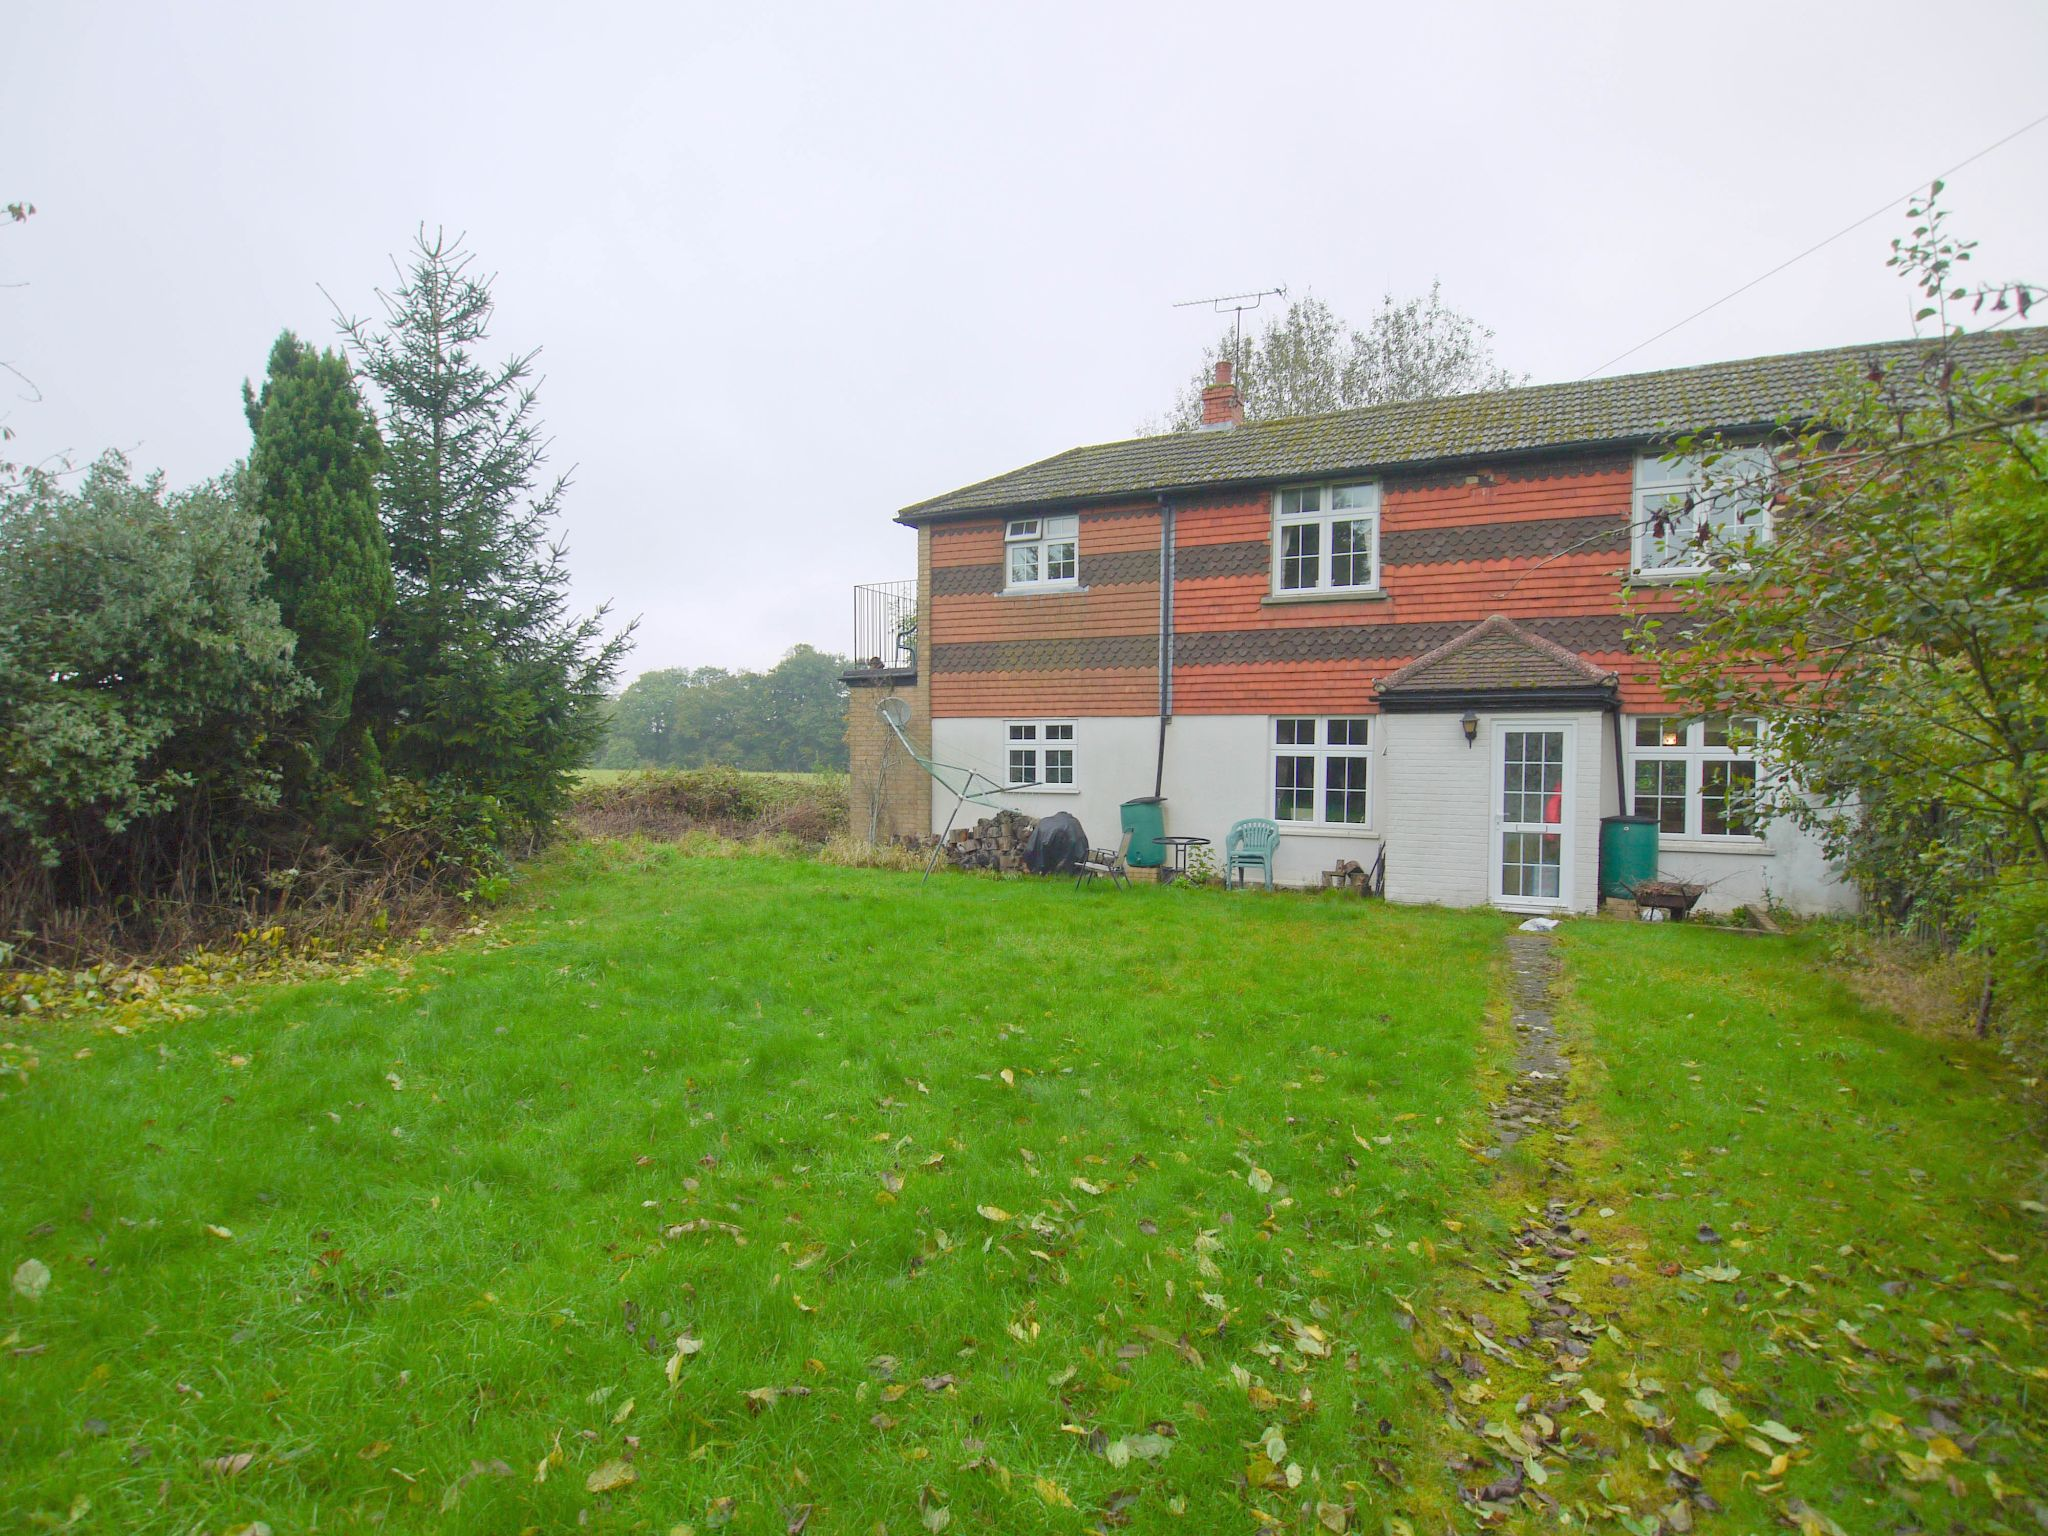 4 bedroom semi-detached house For Sale in Sevenoaks - Photograph 9